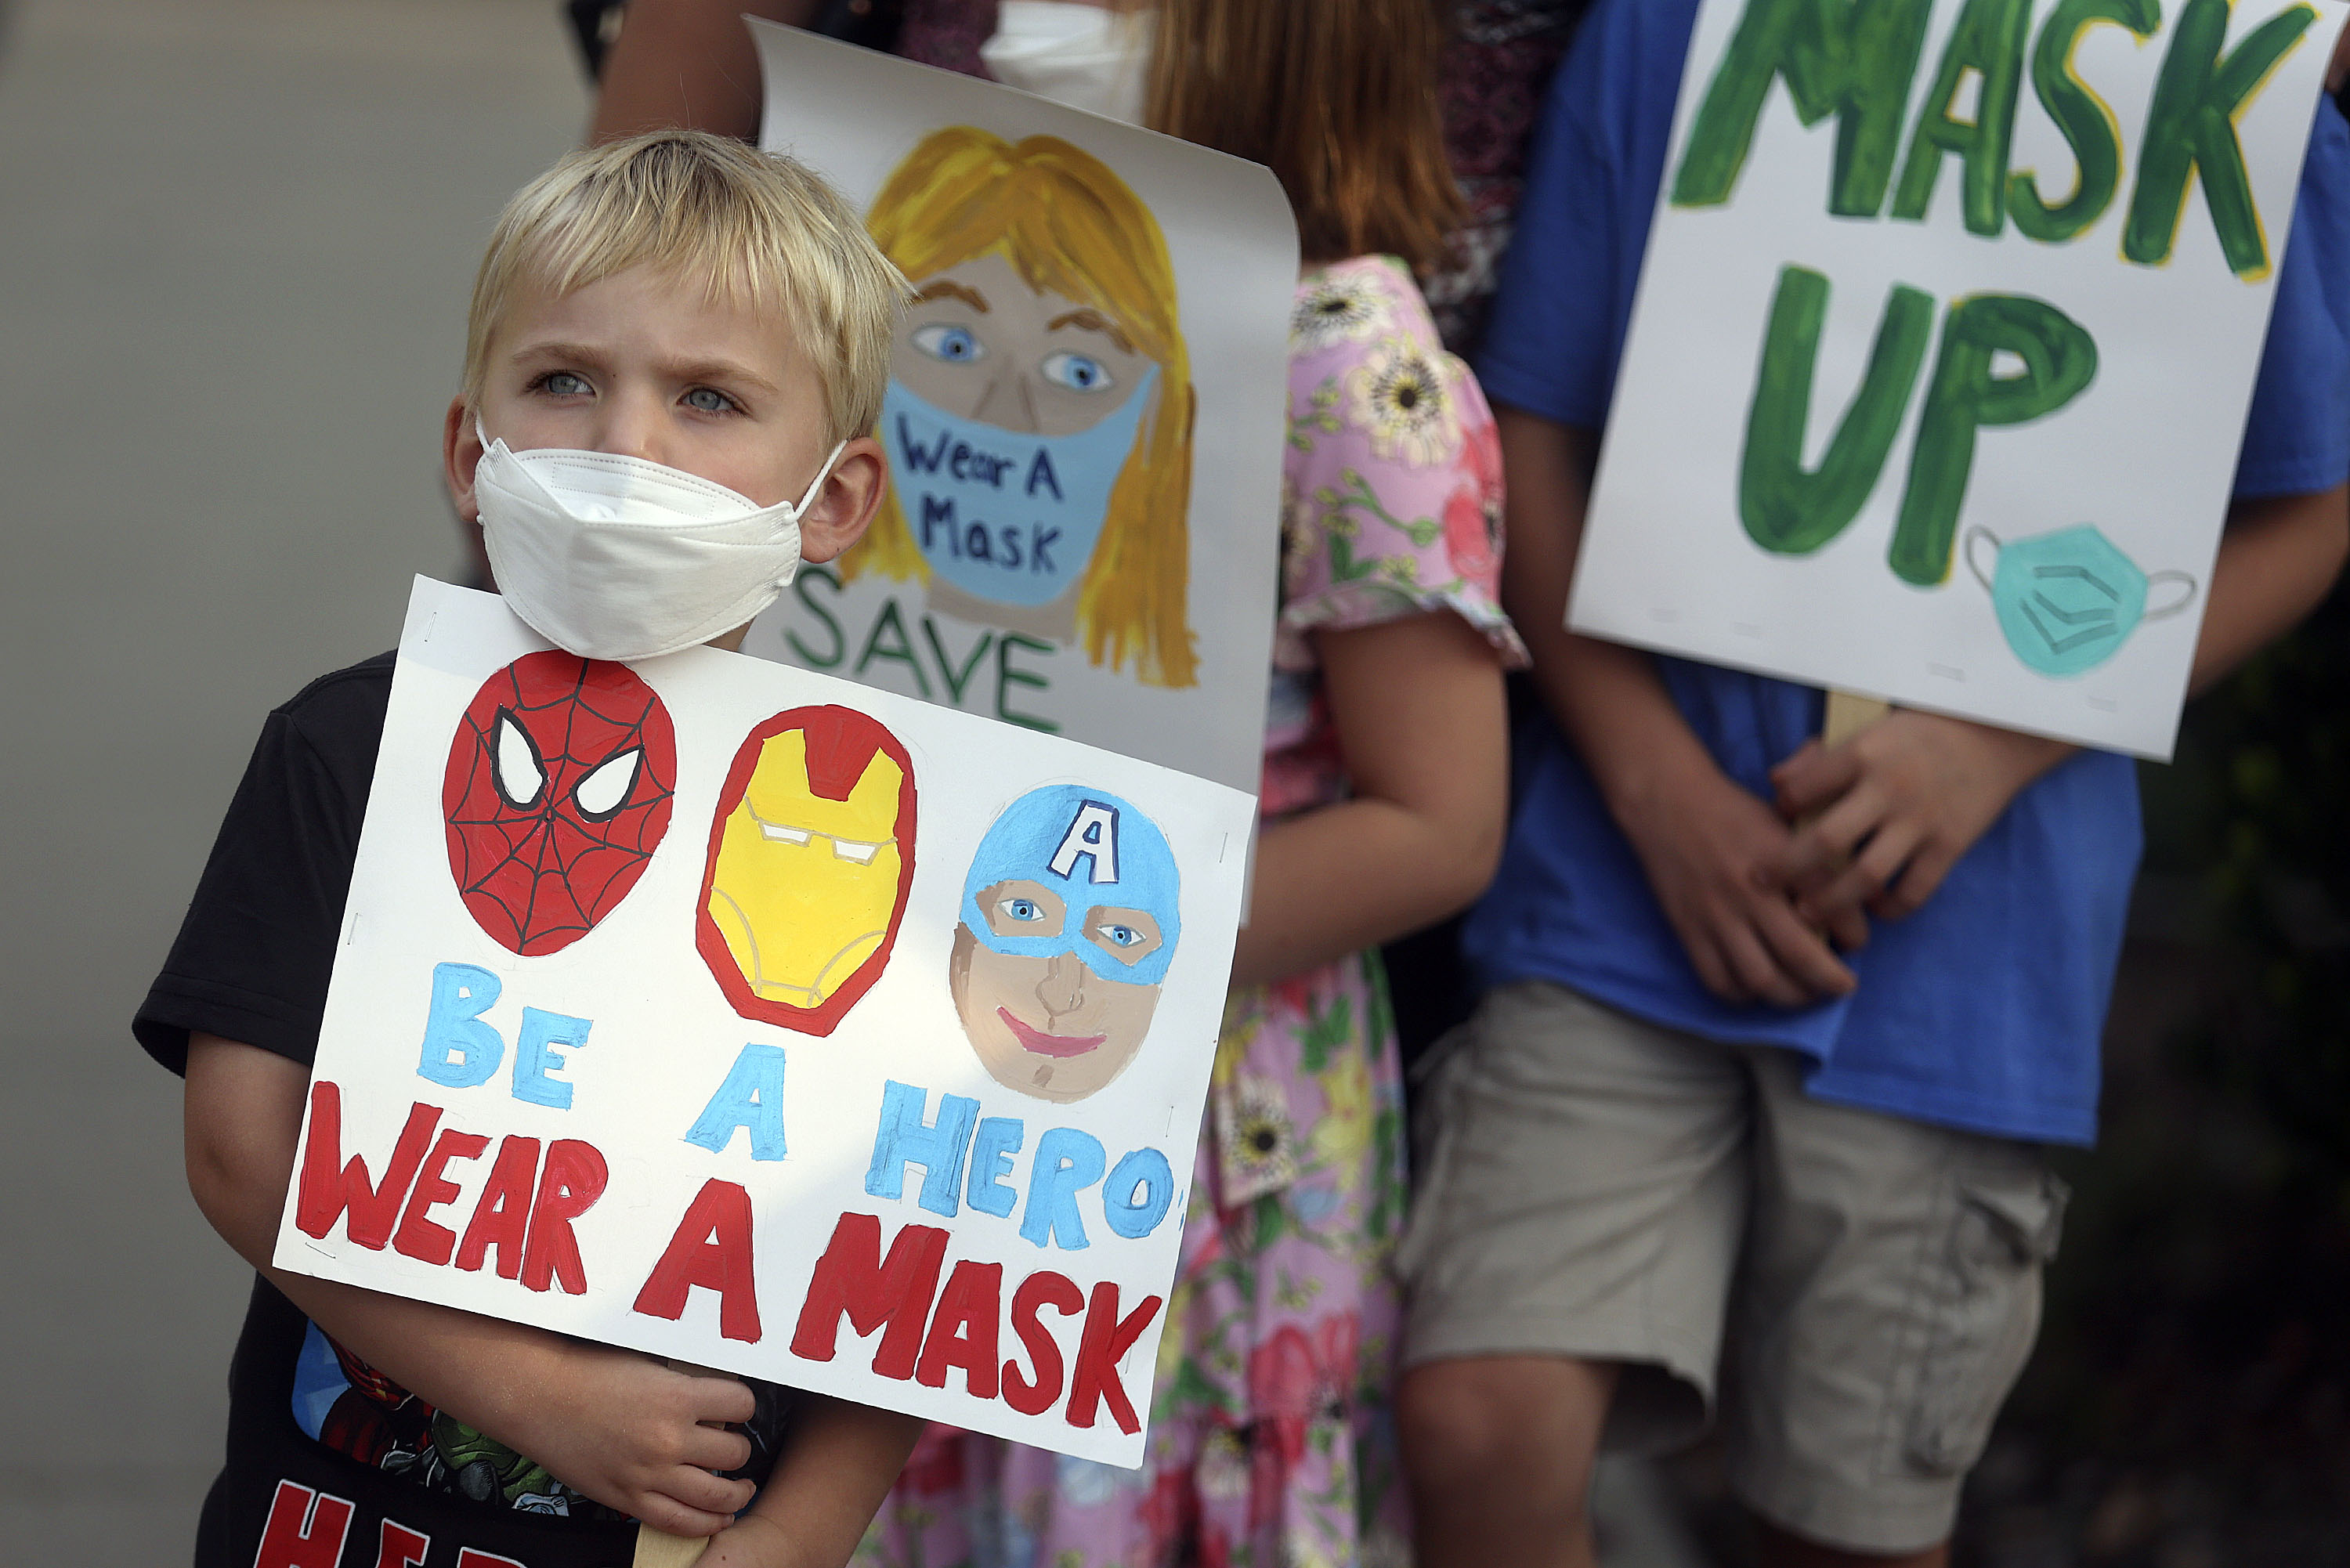 David Phillips holds a sign in support of school mask mandates.